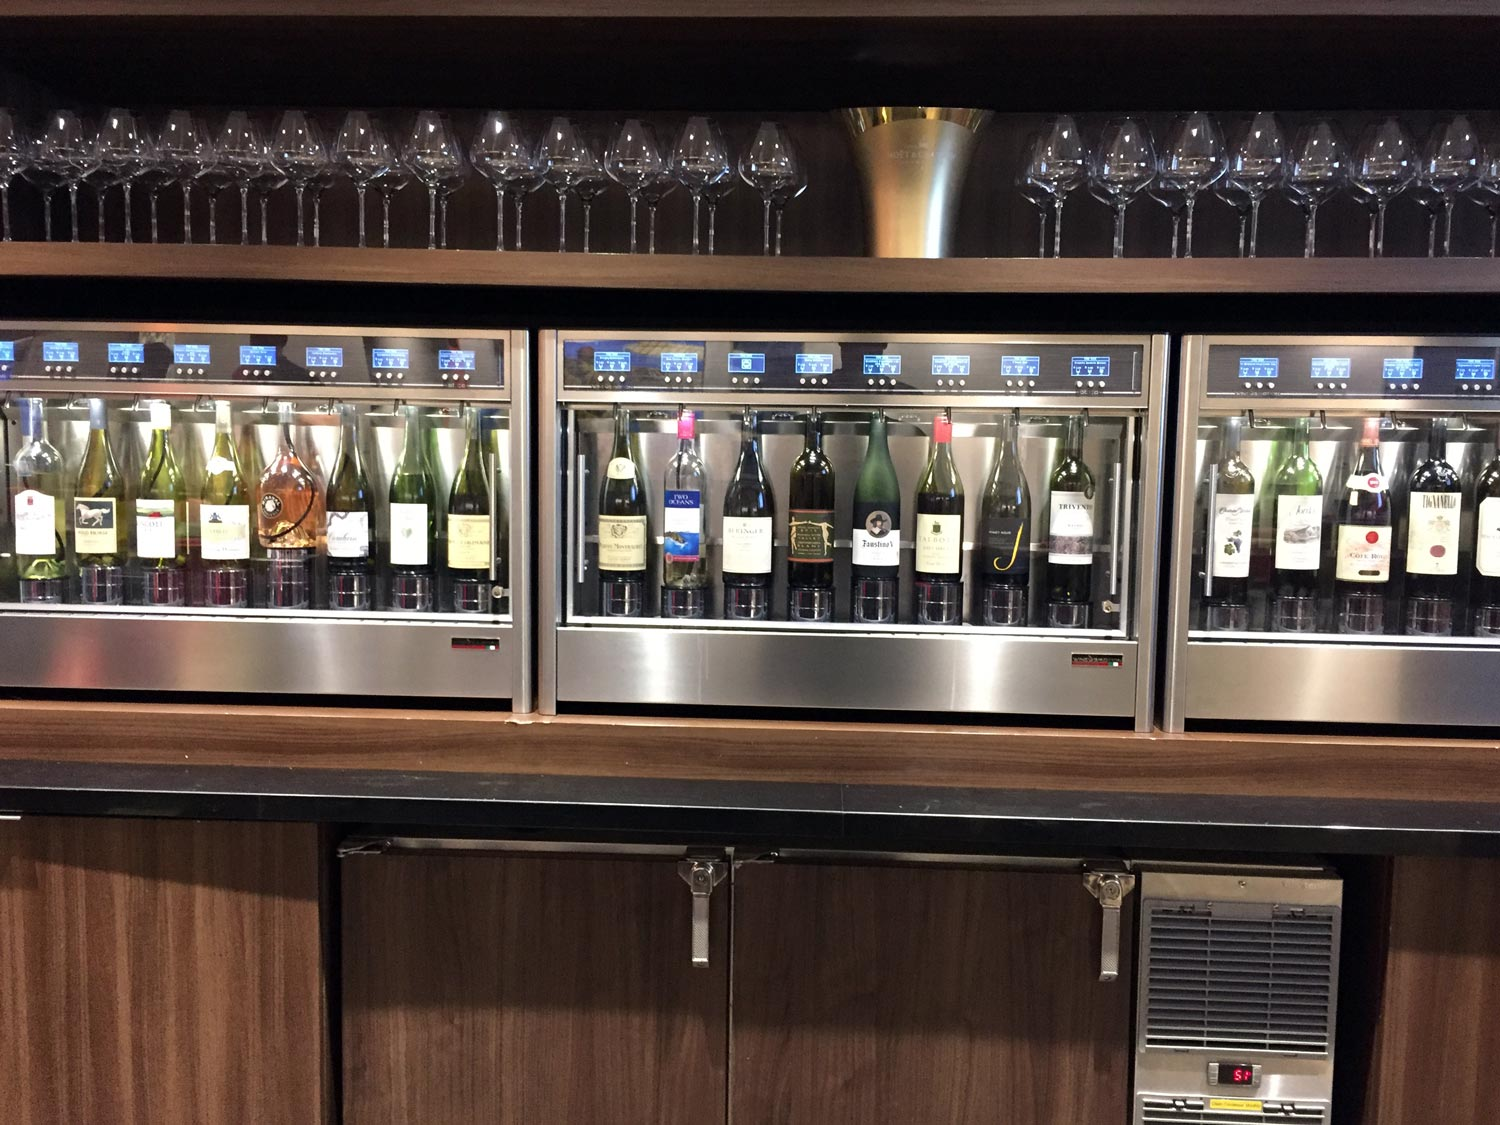 A row of wine bottles in an automatic dispenser at a Delta Sky Club